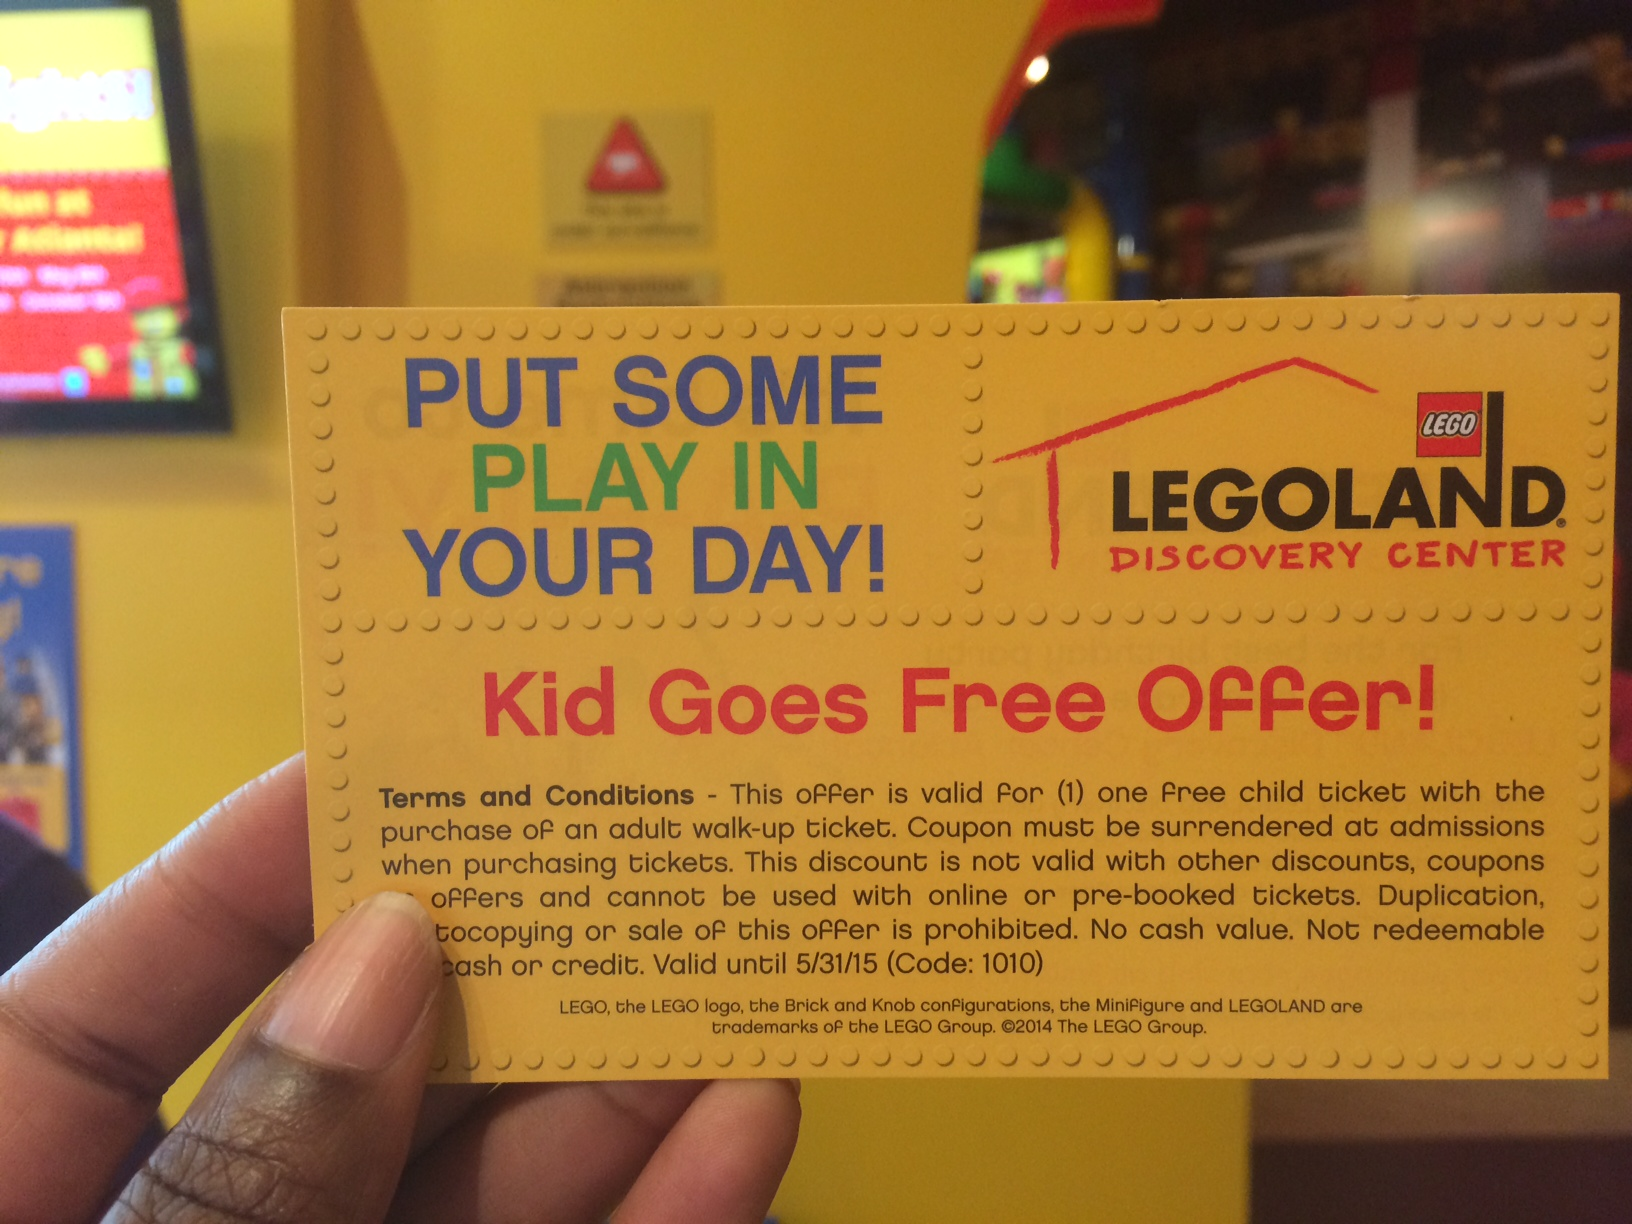 July 2014 Legoland Discovery Center Atlanta Events